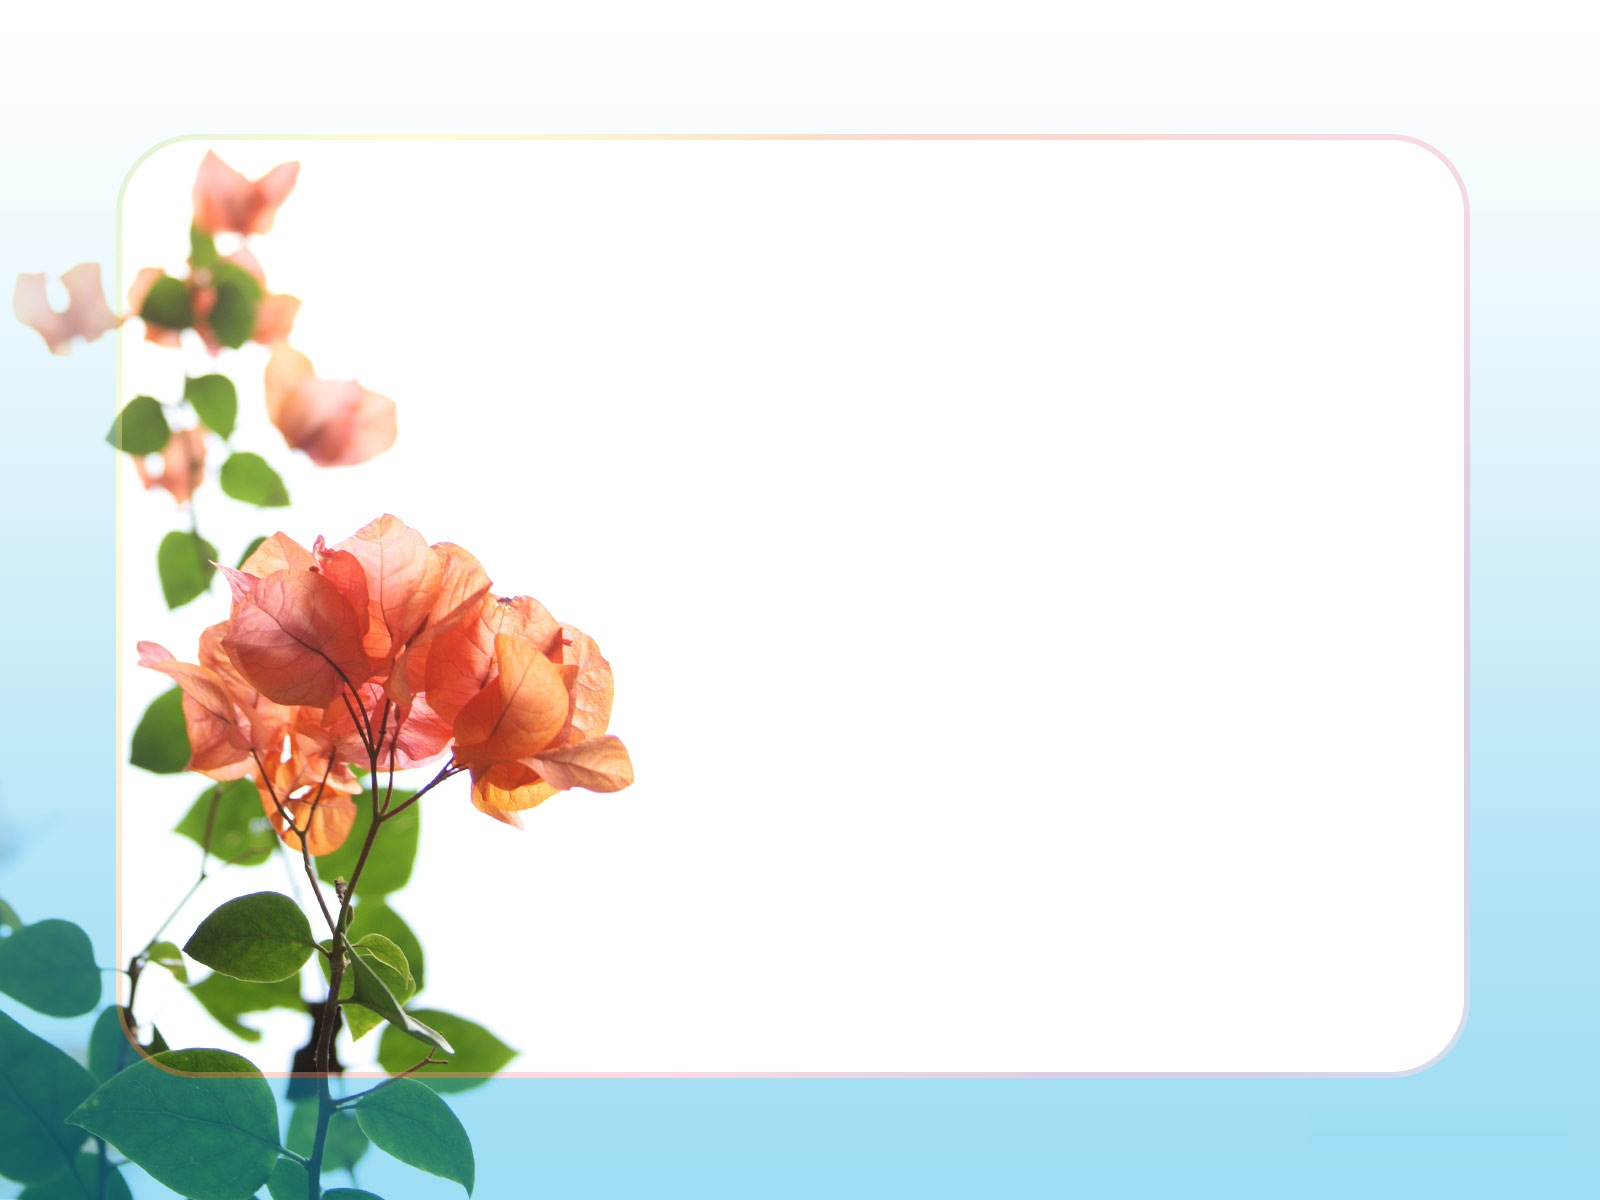 Flower Border Clip Art Hd Background Wallpaper 27 HD.